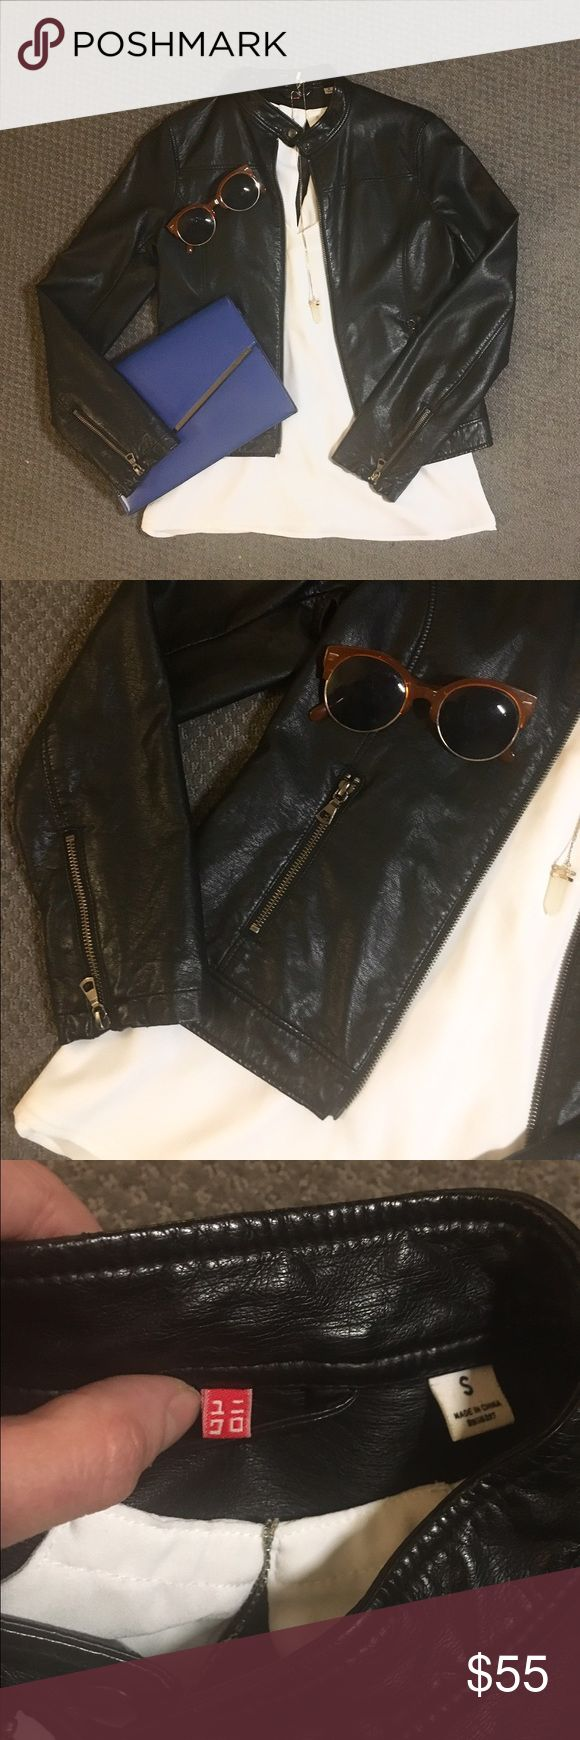 Black faux leather moto jacket  Black faux leather moto jacket - size small. Only worn 3-4 times. I seriously love this jacket!! Sorry I'm not familiar with the brand; bought it while living in Spain a couple years ago. Took a pic in case anyone recognizes the tag. Definitely paid upwards of $115 for it. Shell is imitation leather, lining is 100% polyester. Smoke-free home  Jackets & Coats